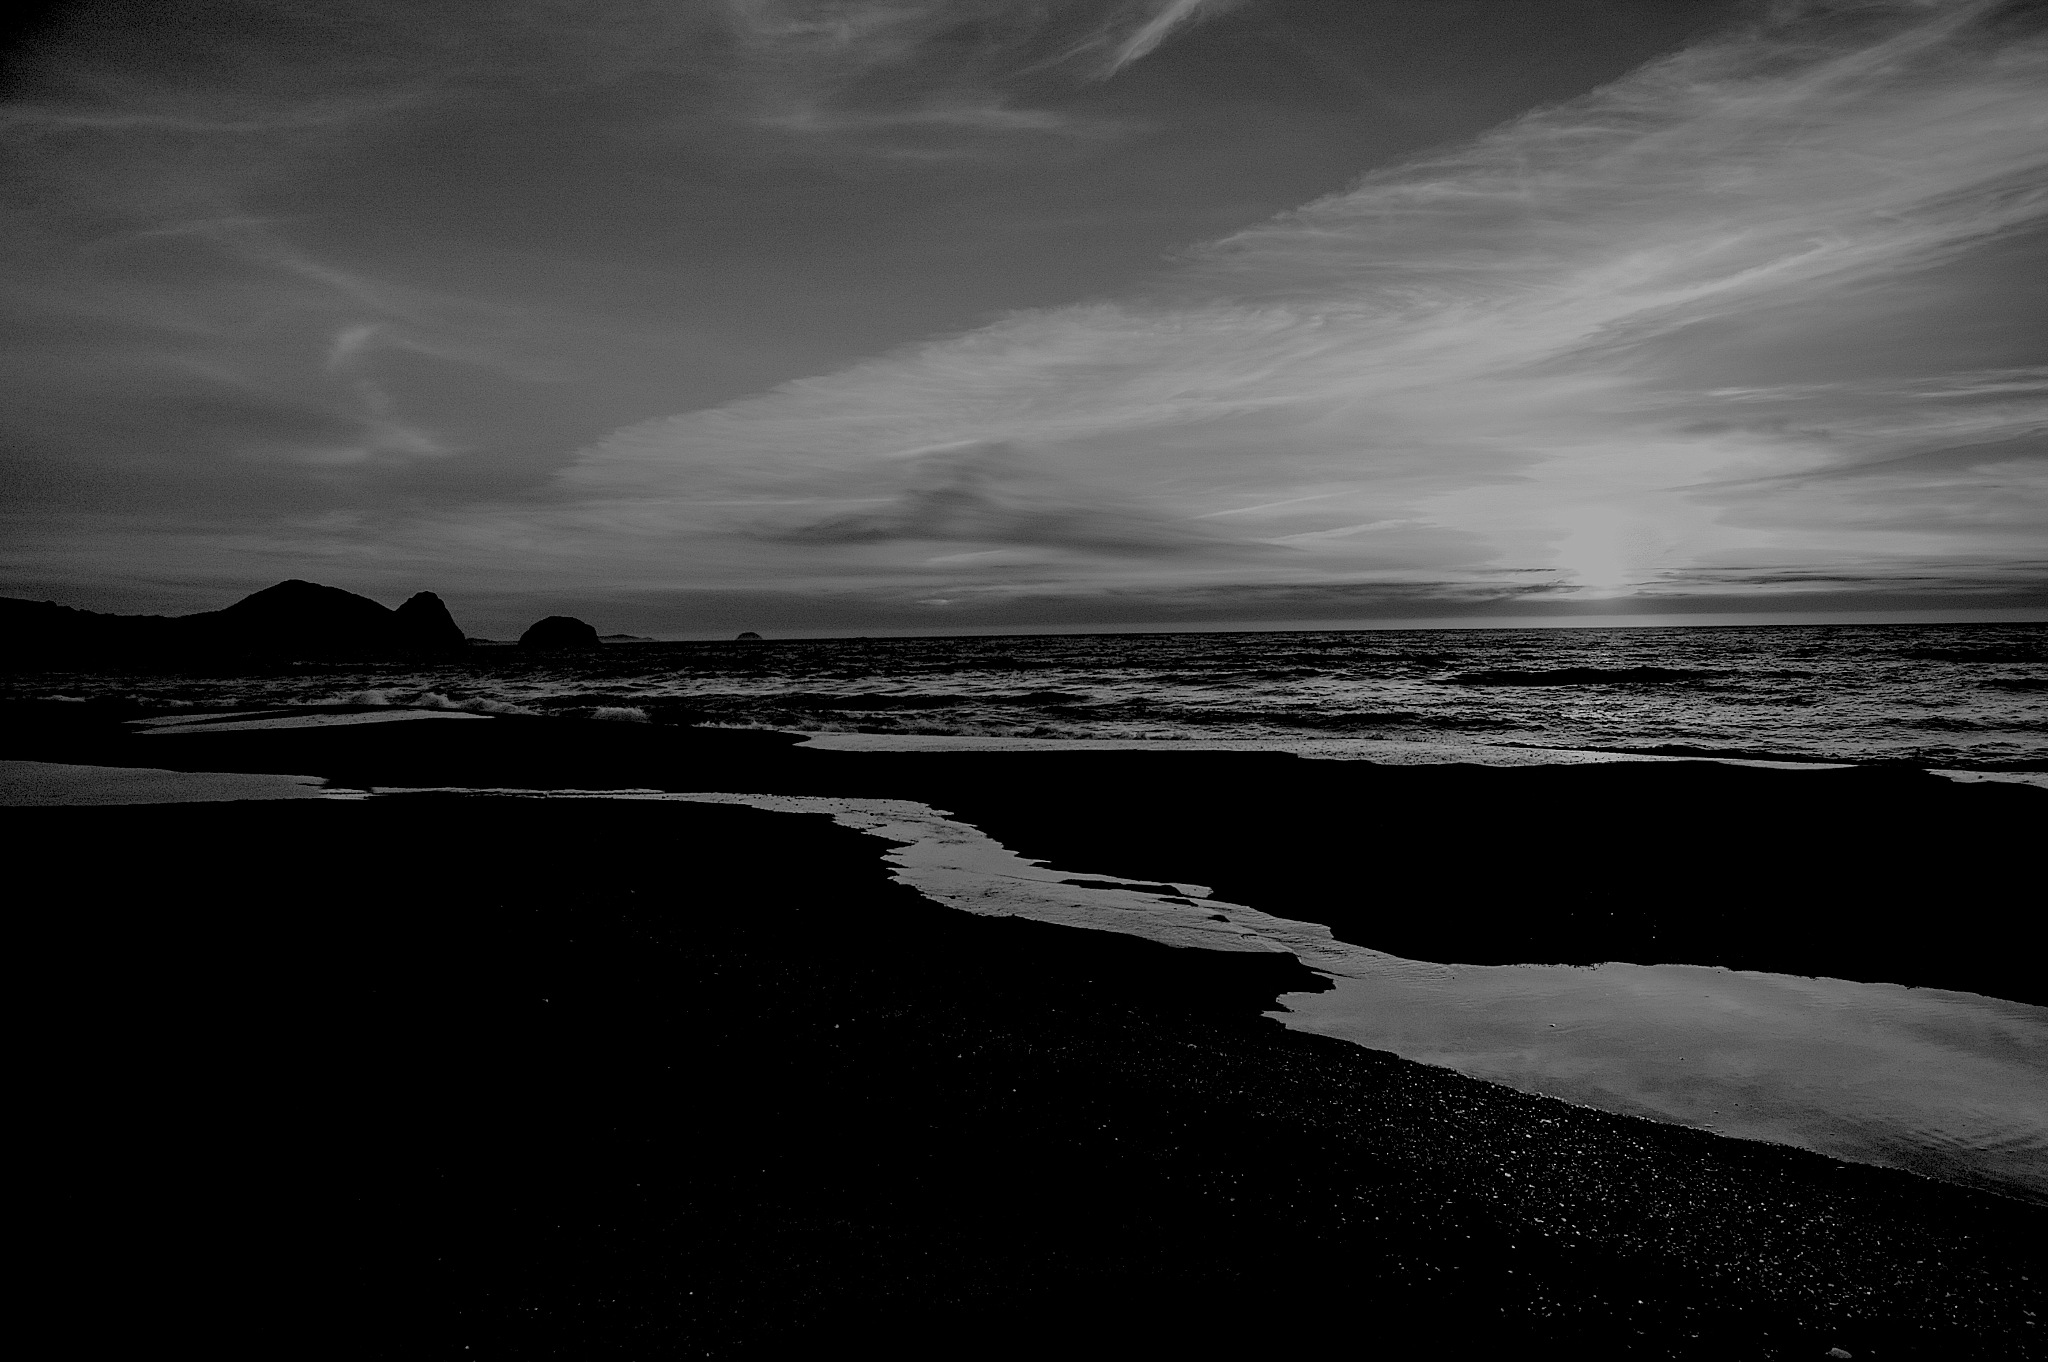 sunset on a Oregon beach by sonny_roger_sonneland